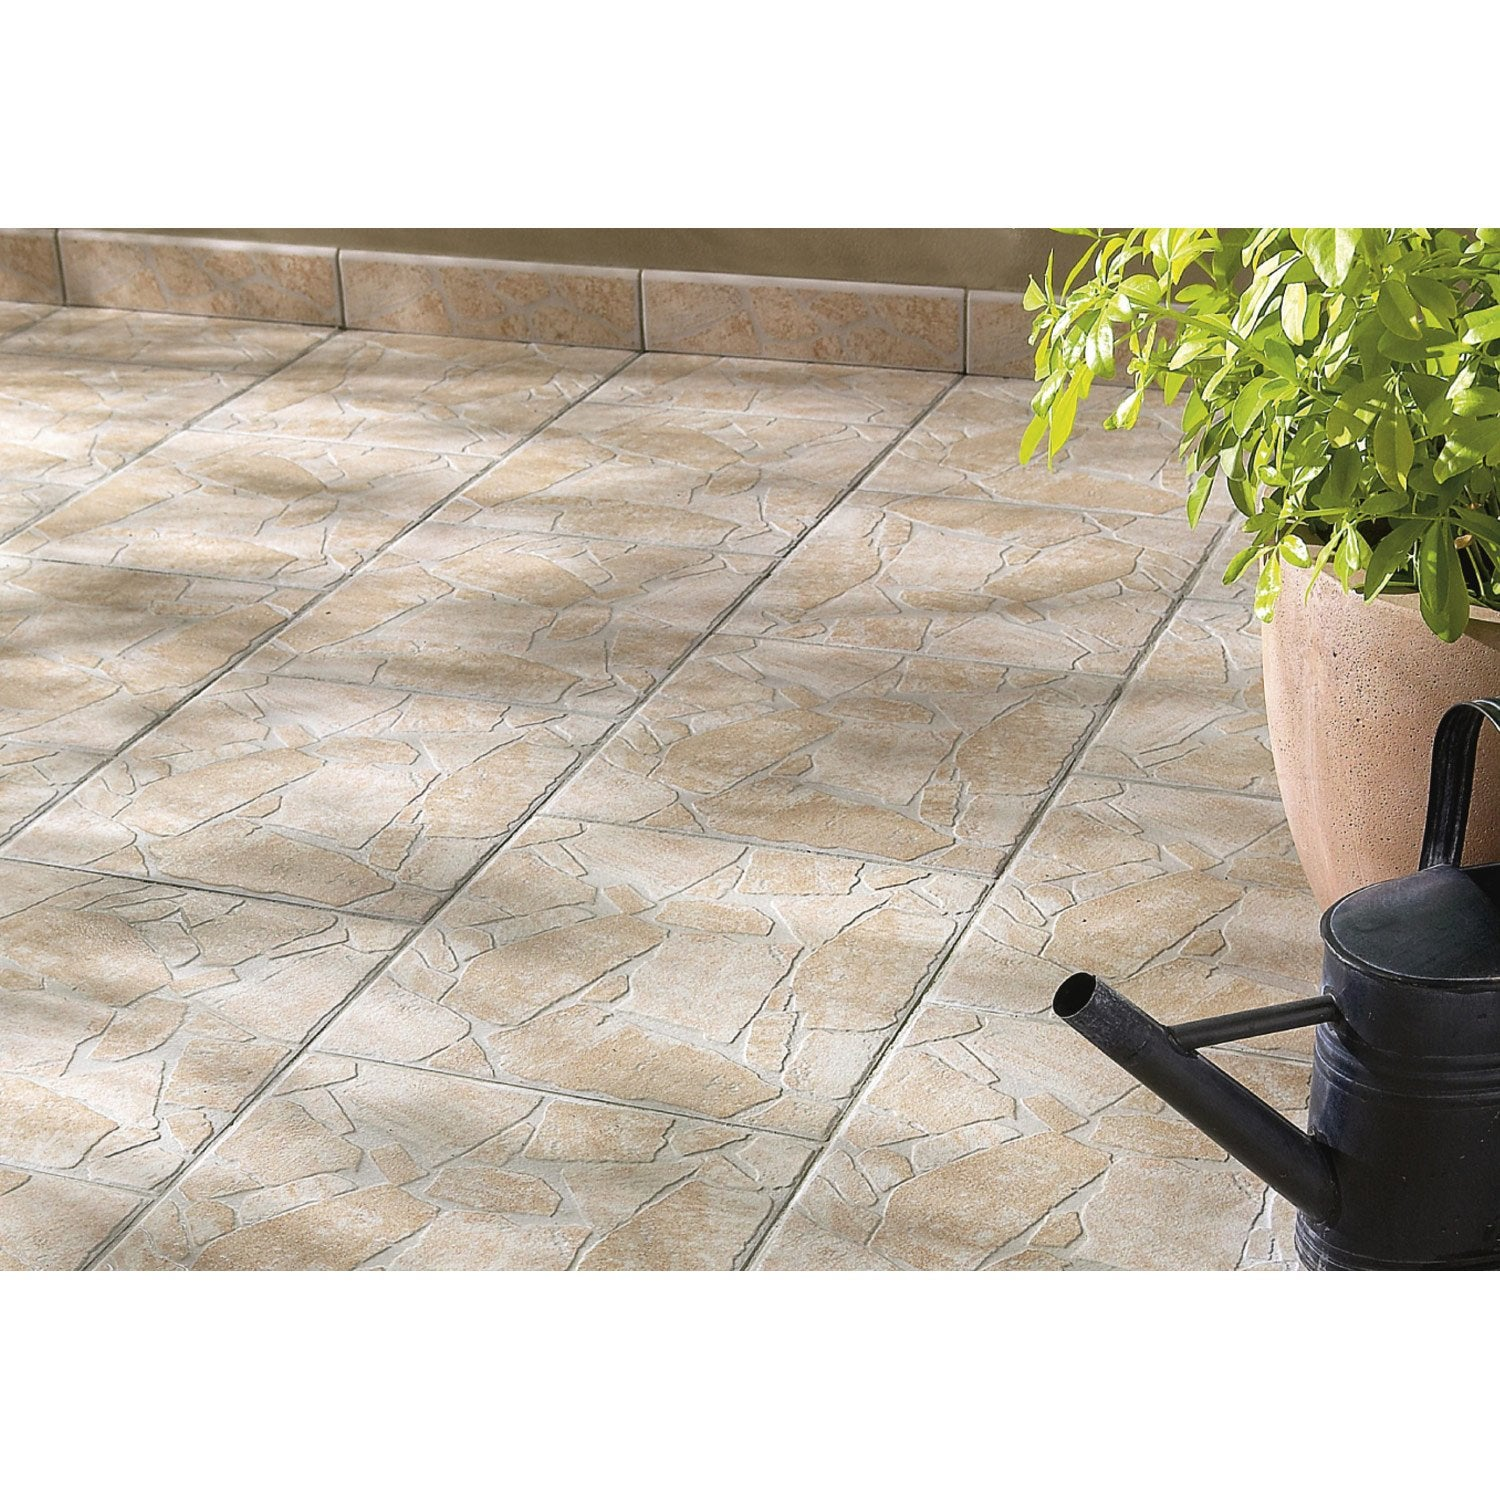 Carrelage sol beige effet pierre opus x cm for Carrelage rose